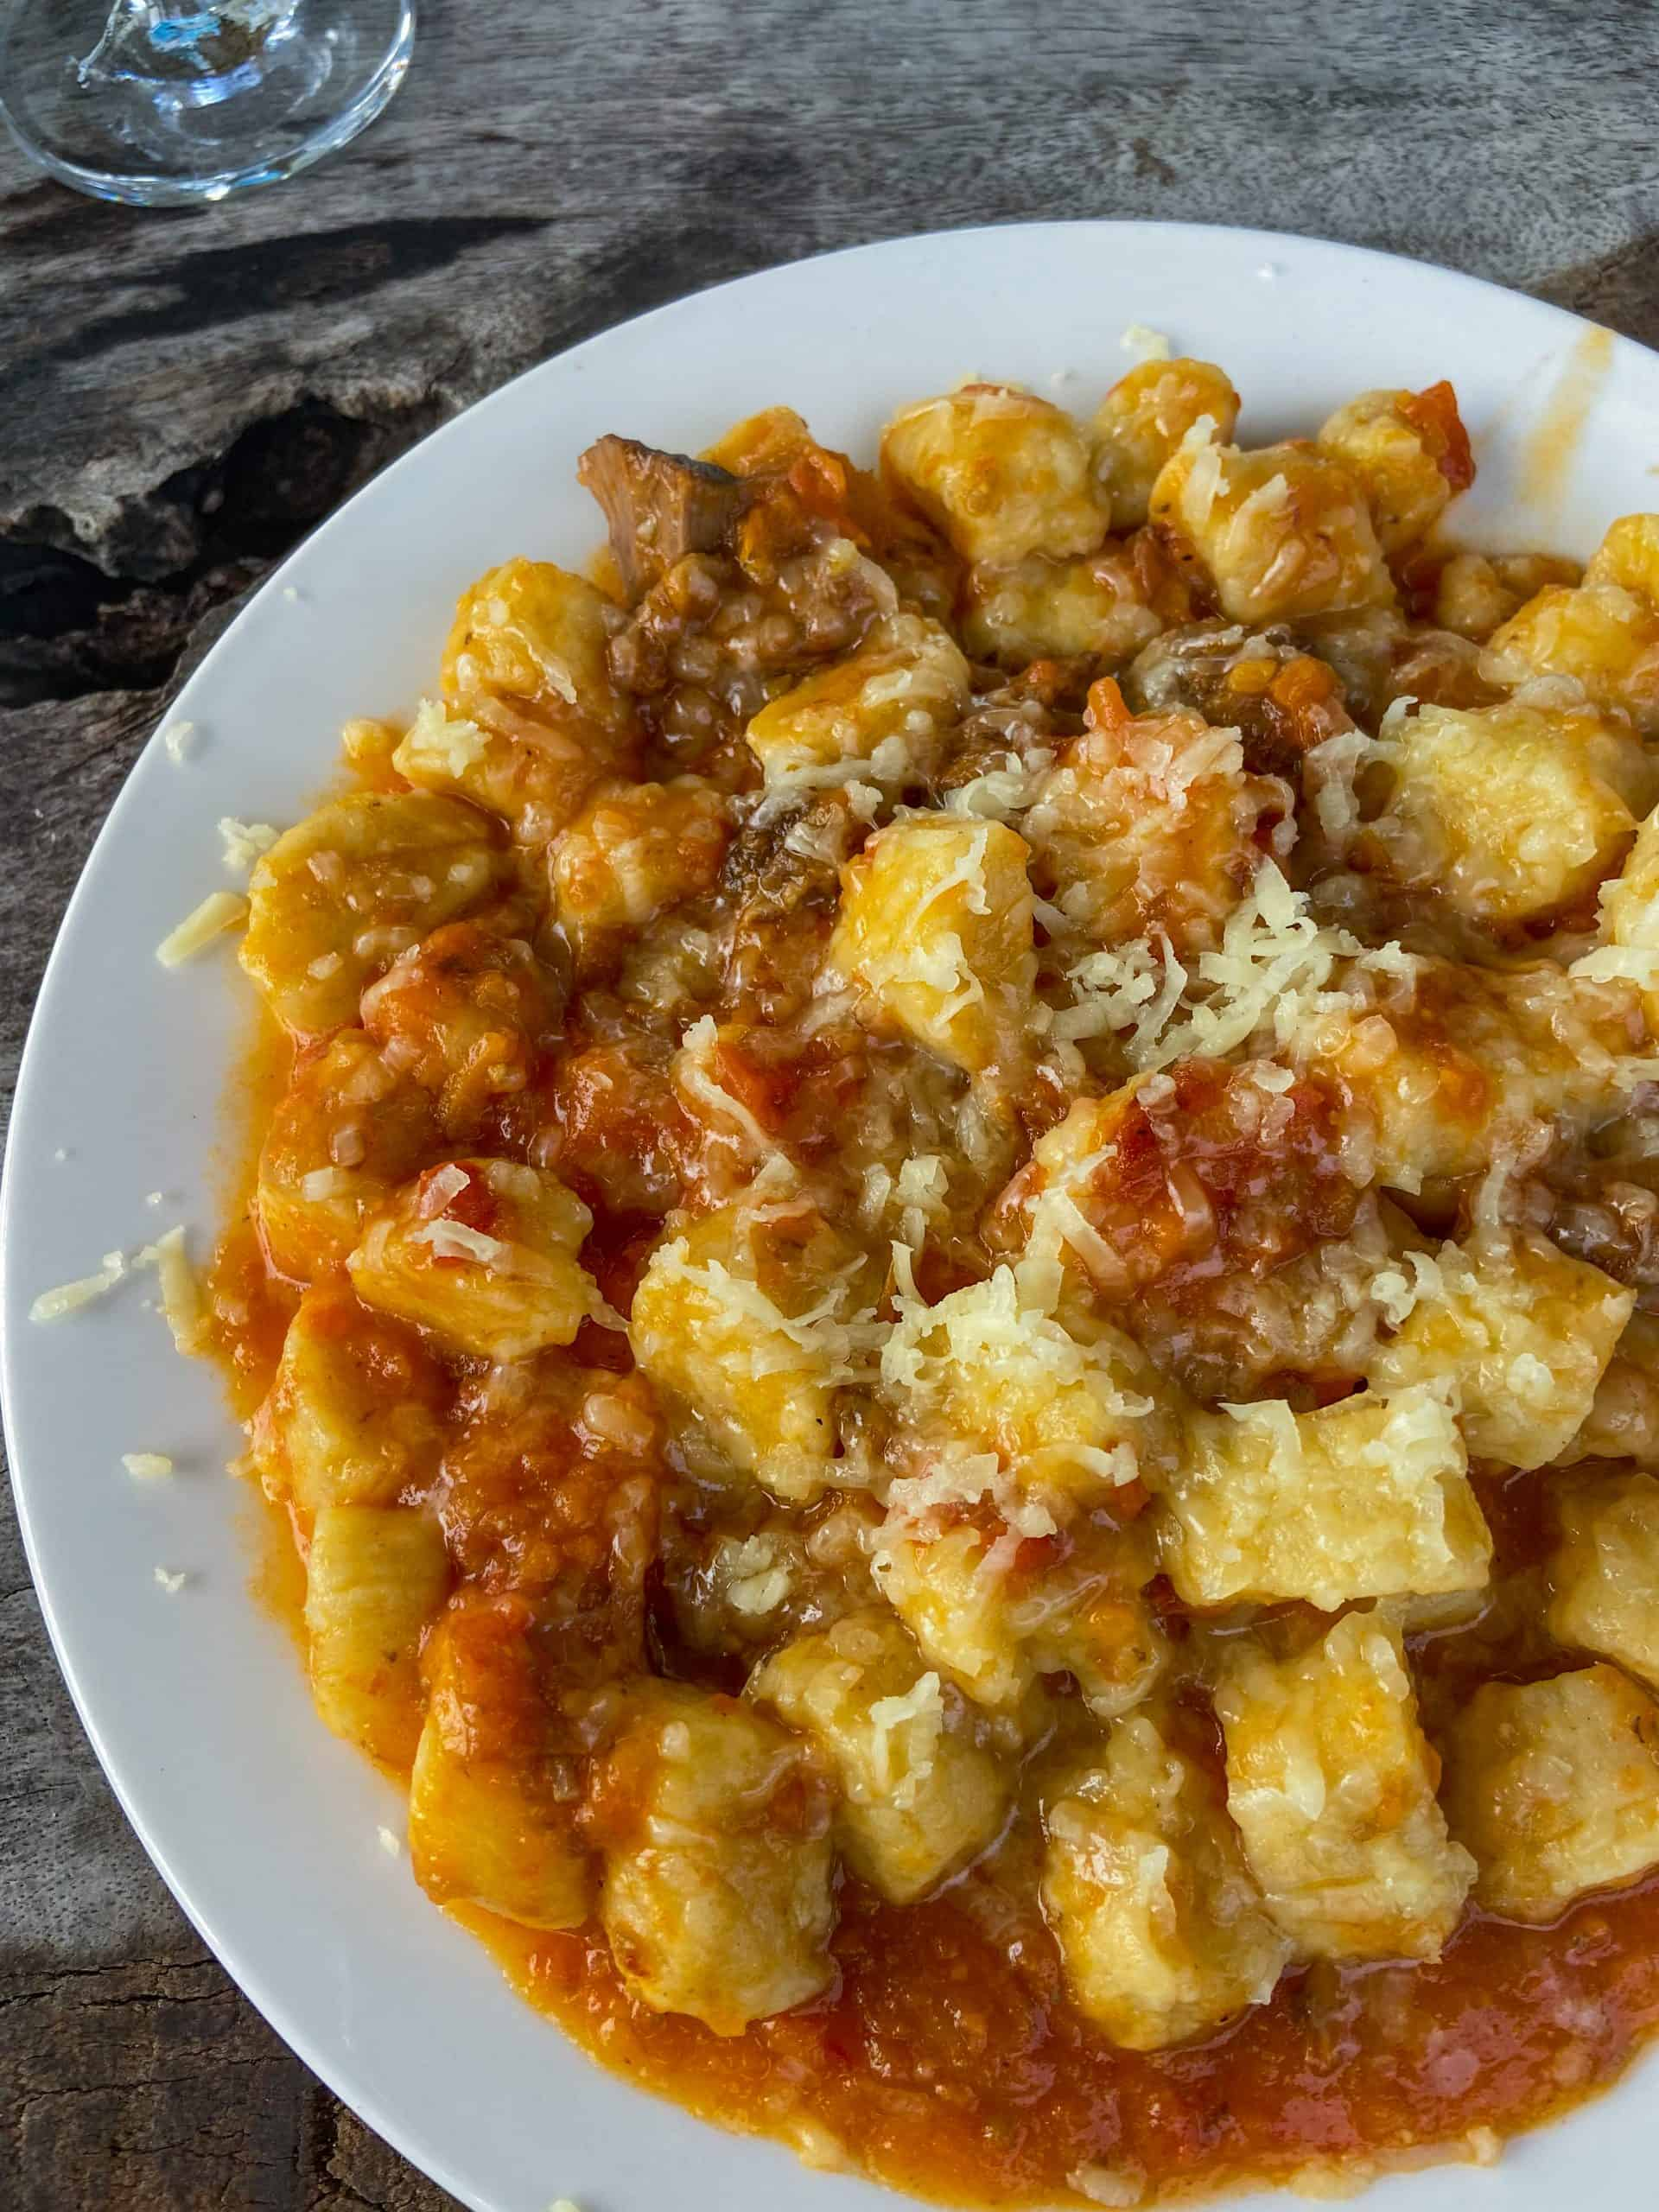 Gnocchi with ragu sauce at Ciao